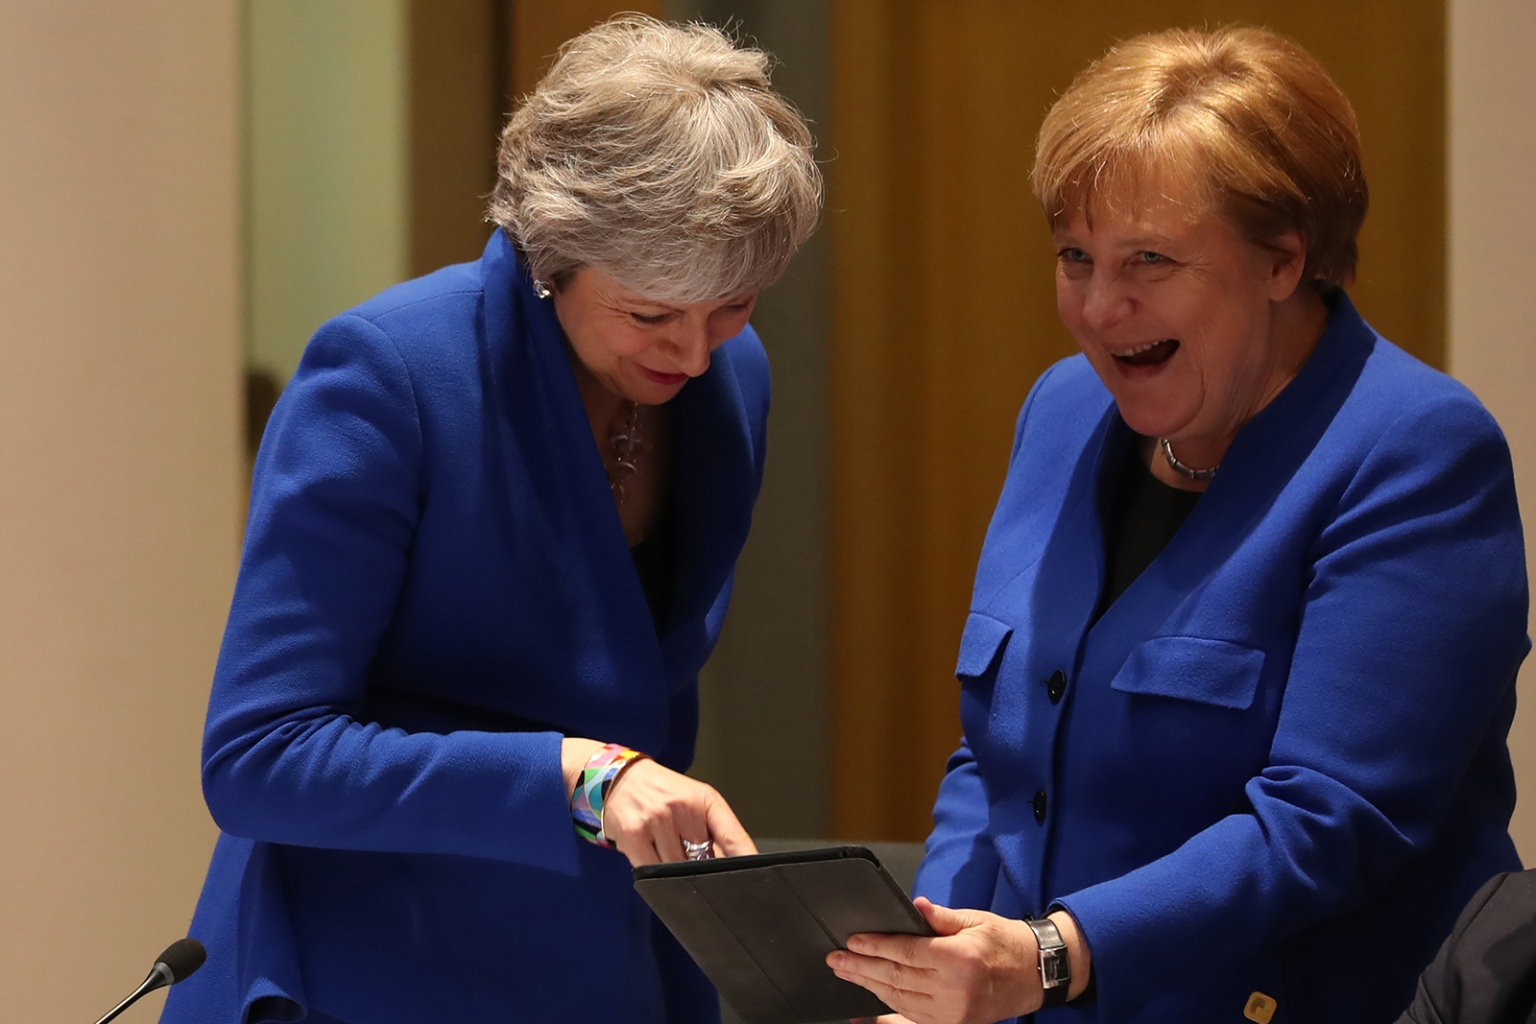 British Prime Minister Theresa May and German Chancellor Angela Merkel look at a tablet ahead of a European Council meeting on Brexit in Brussels on April 10. KENZO TRIBOUILLARD/AFP/Getty Images